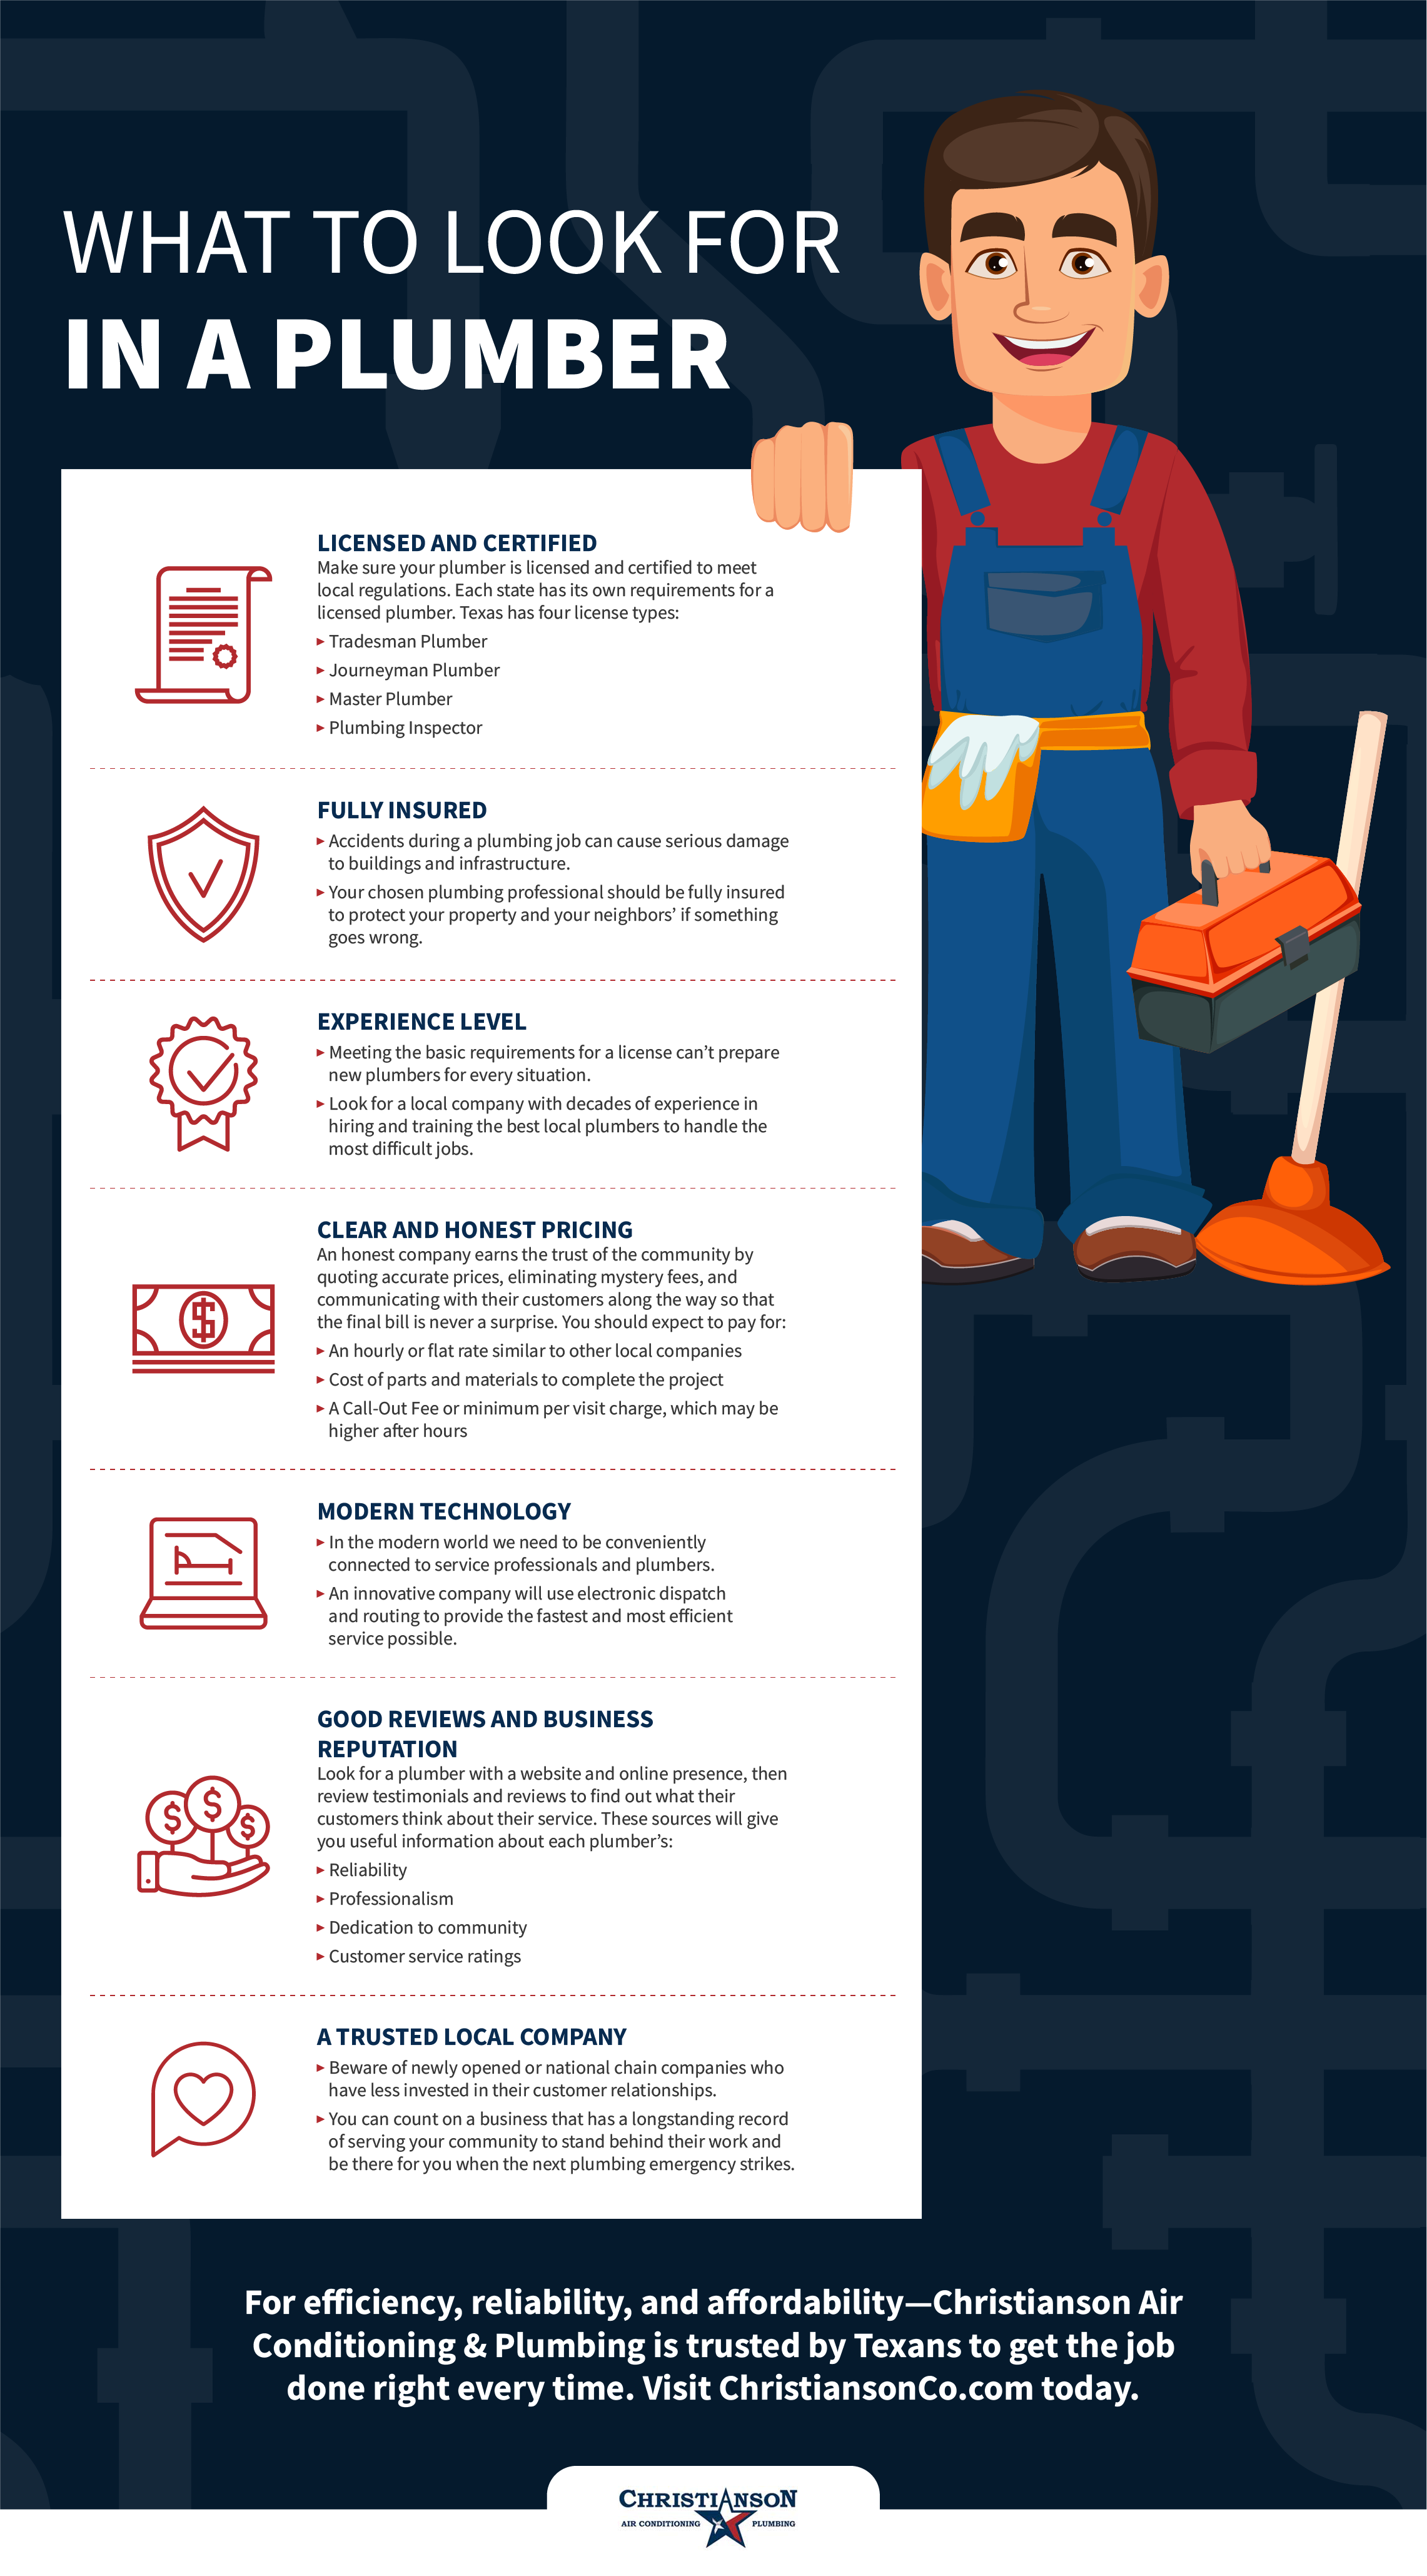 Things to Look For When Choosing a Plumber Infographic